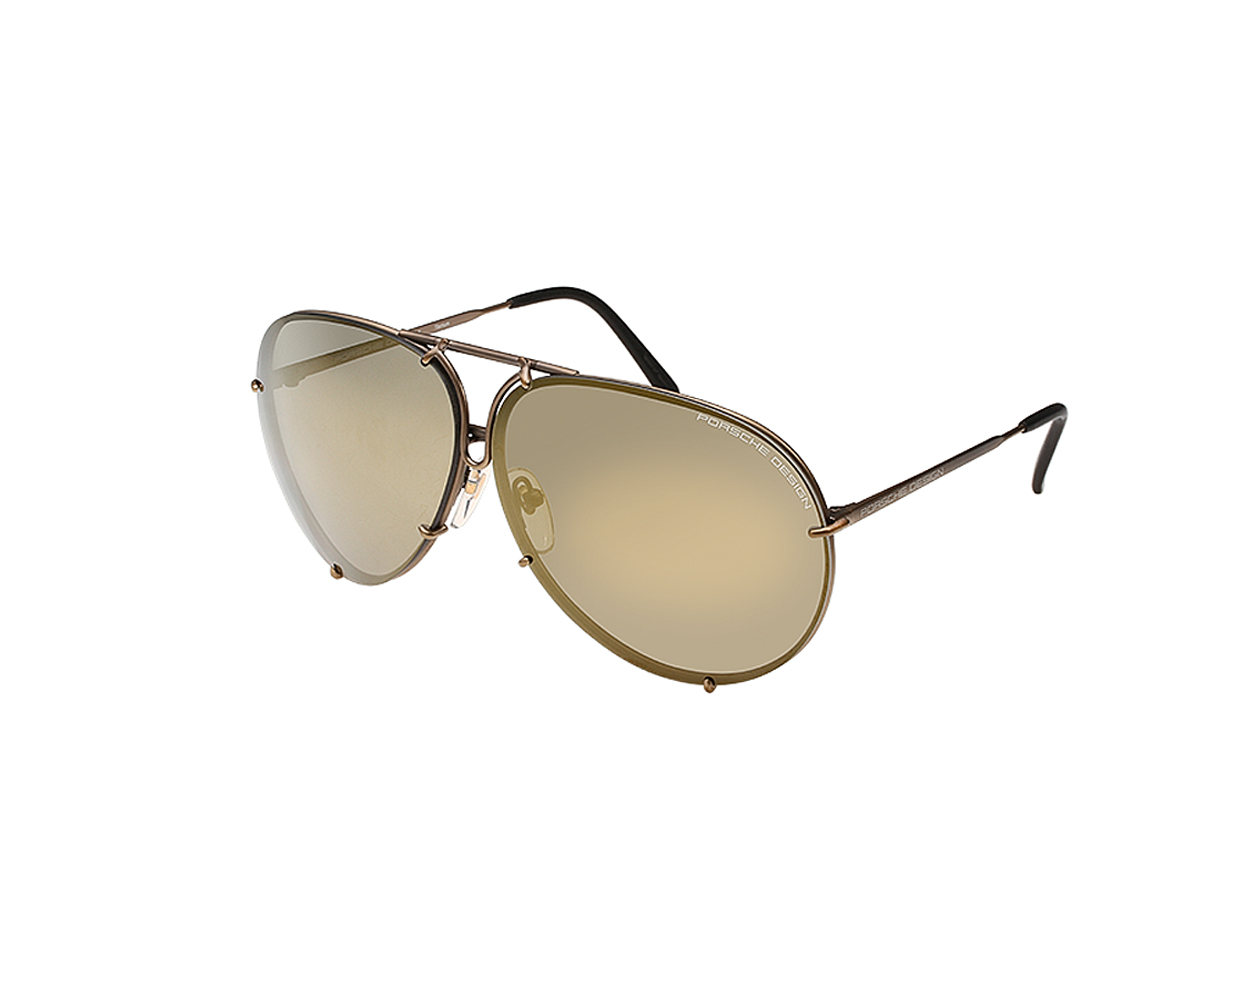 Details about Porsche Design P8478 E 66mm Sunglasses Copper Frame  Interchangeable Lenses 389545b4c96